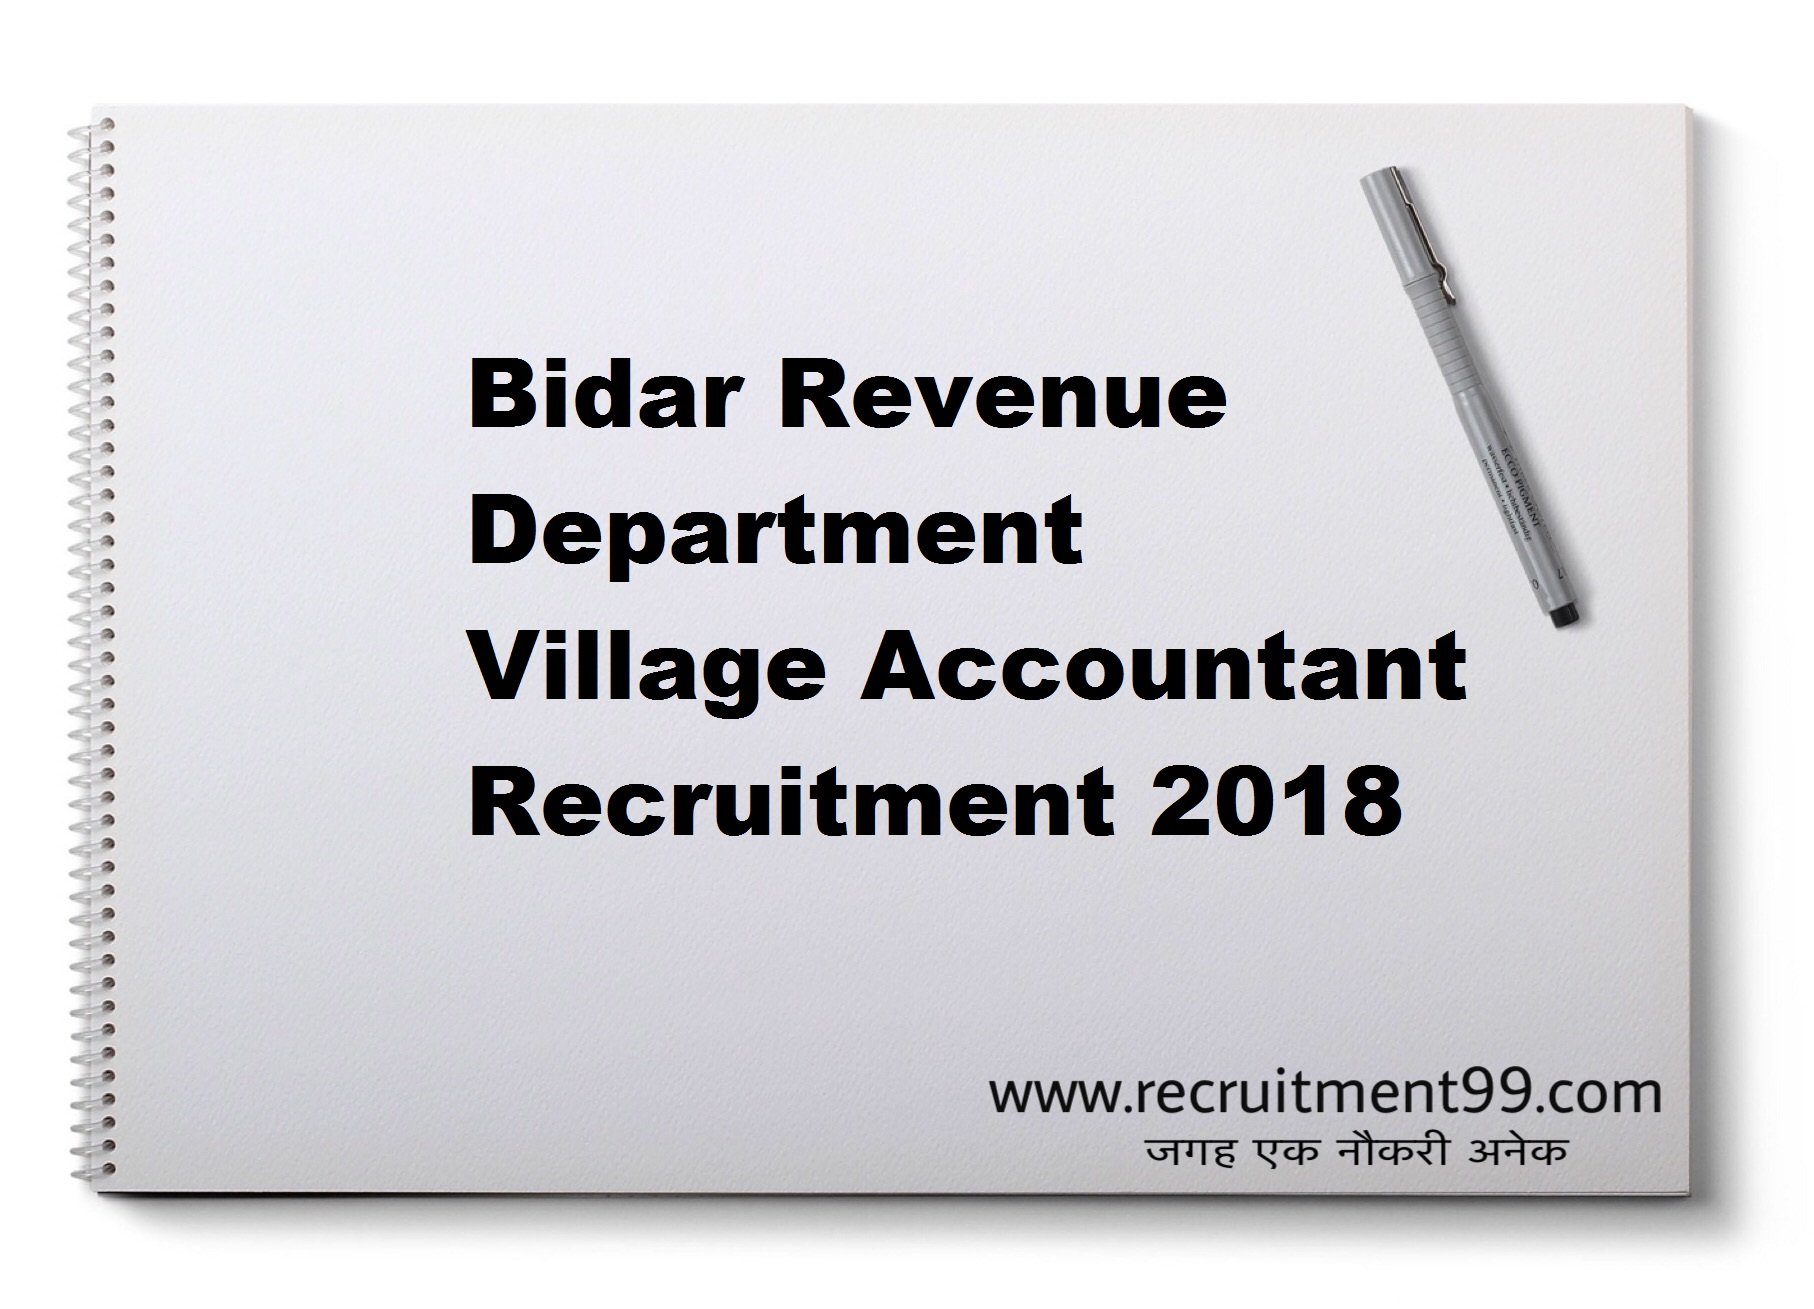 Bidar Revenue Department Village Accountant Recruitment Hall ticket Result 2018